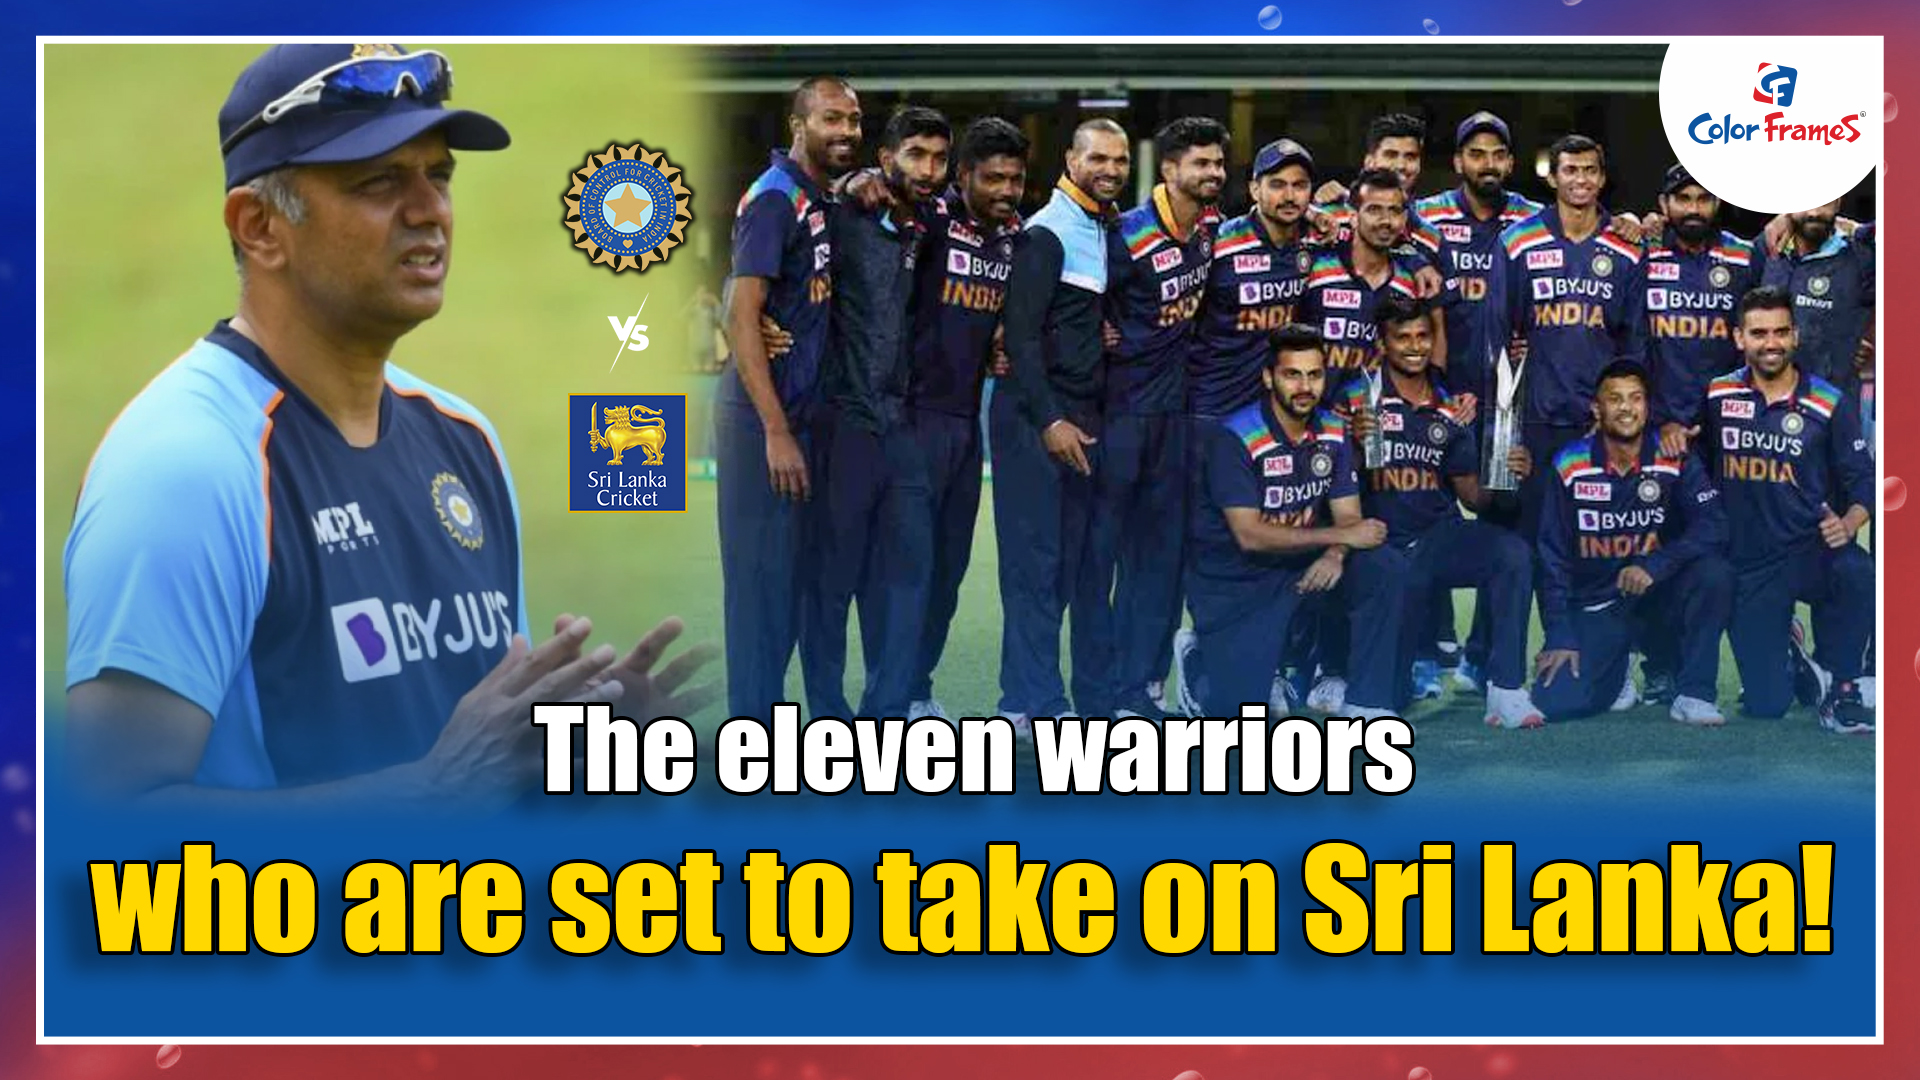 The eleven warriors who are set to take on Sri Lanka!